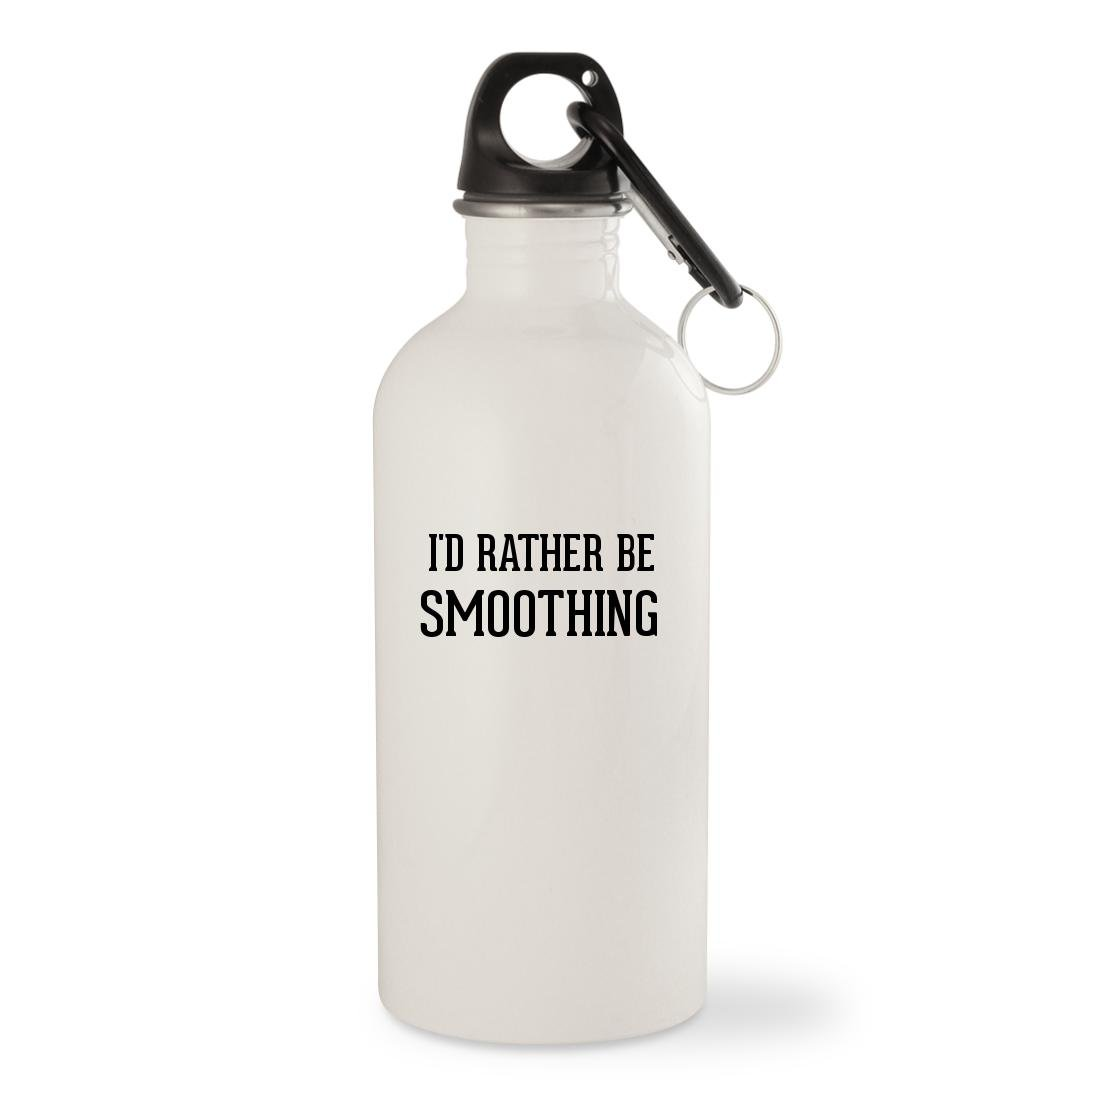 I'd Rather Be SMOOTHING - White 20oz Stainless Steel Water Bottle with Carabiner